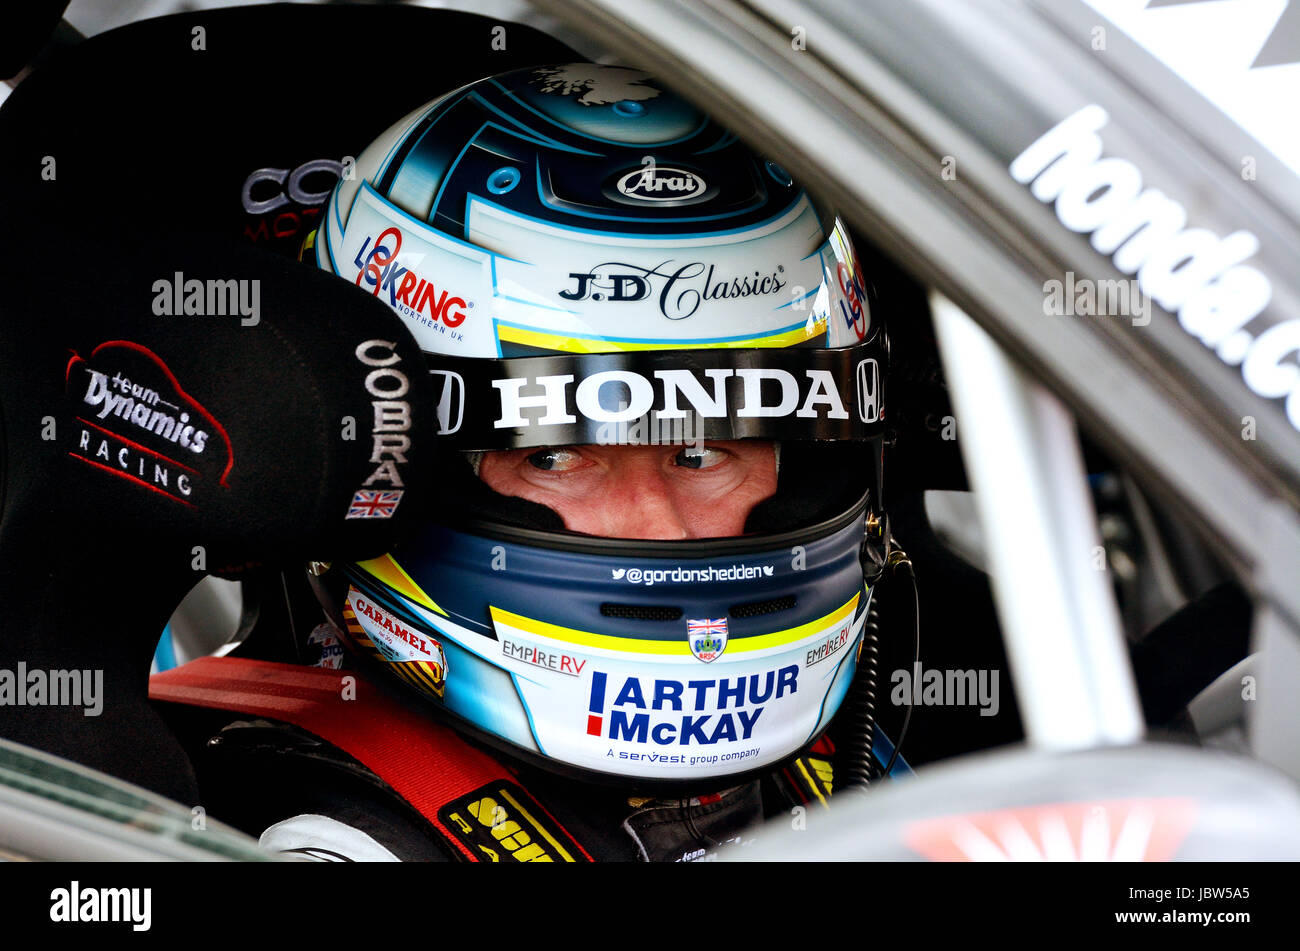 British Touring Car Championship - Stock Image